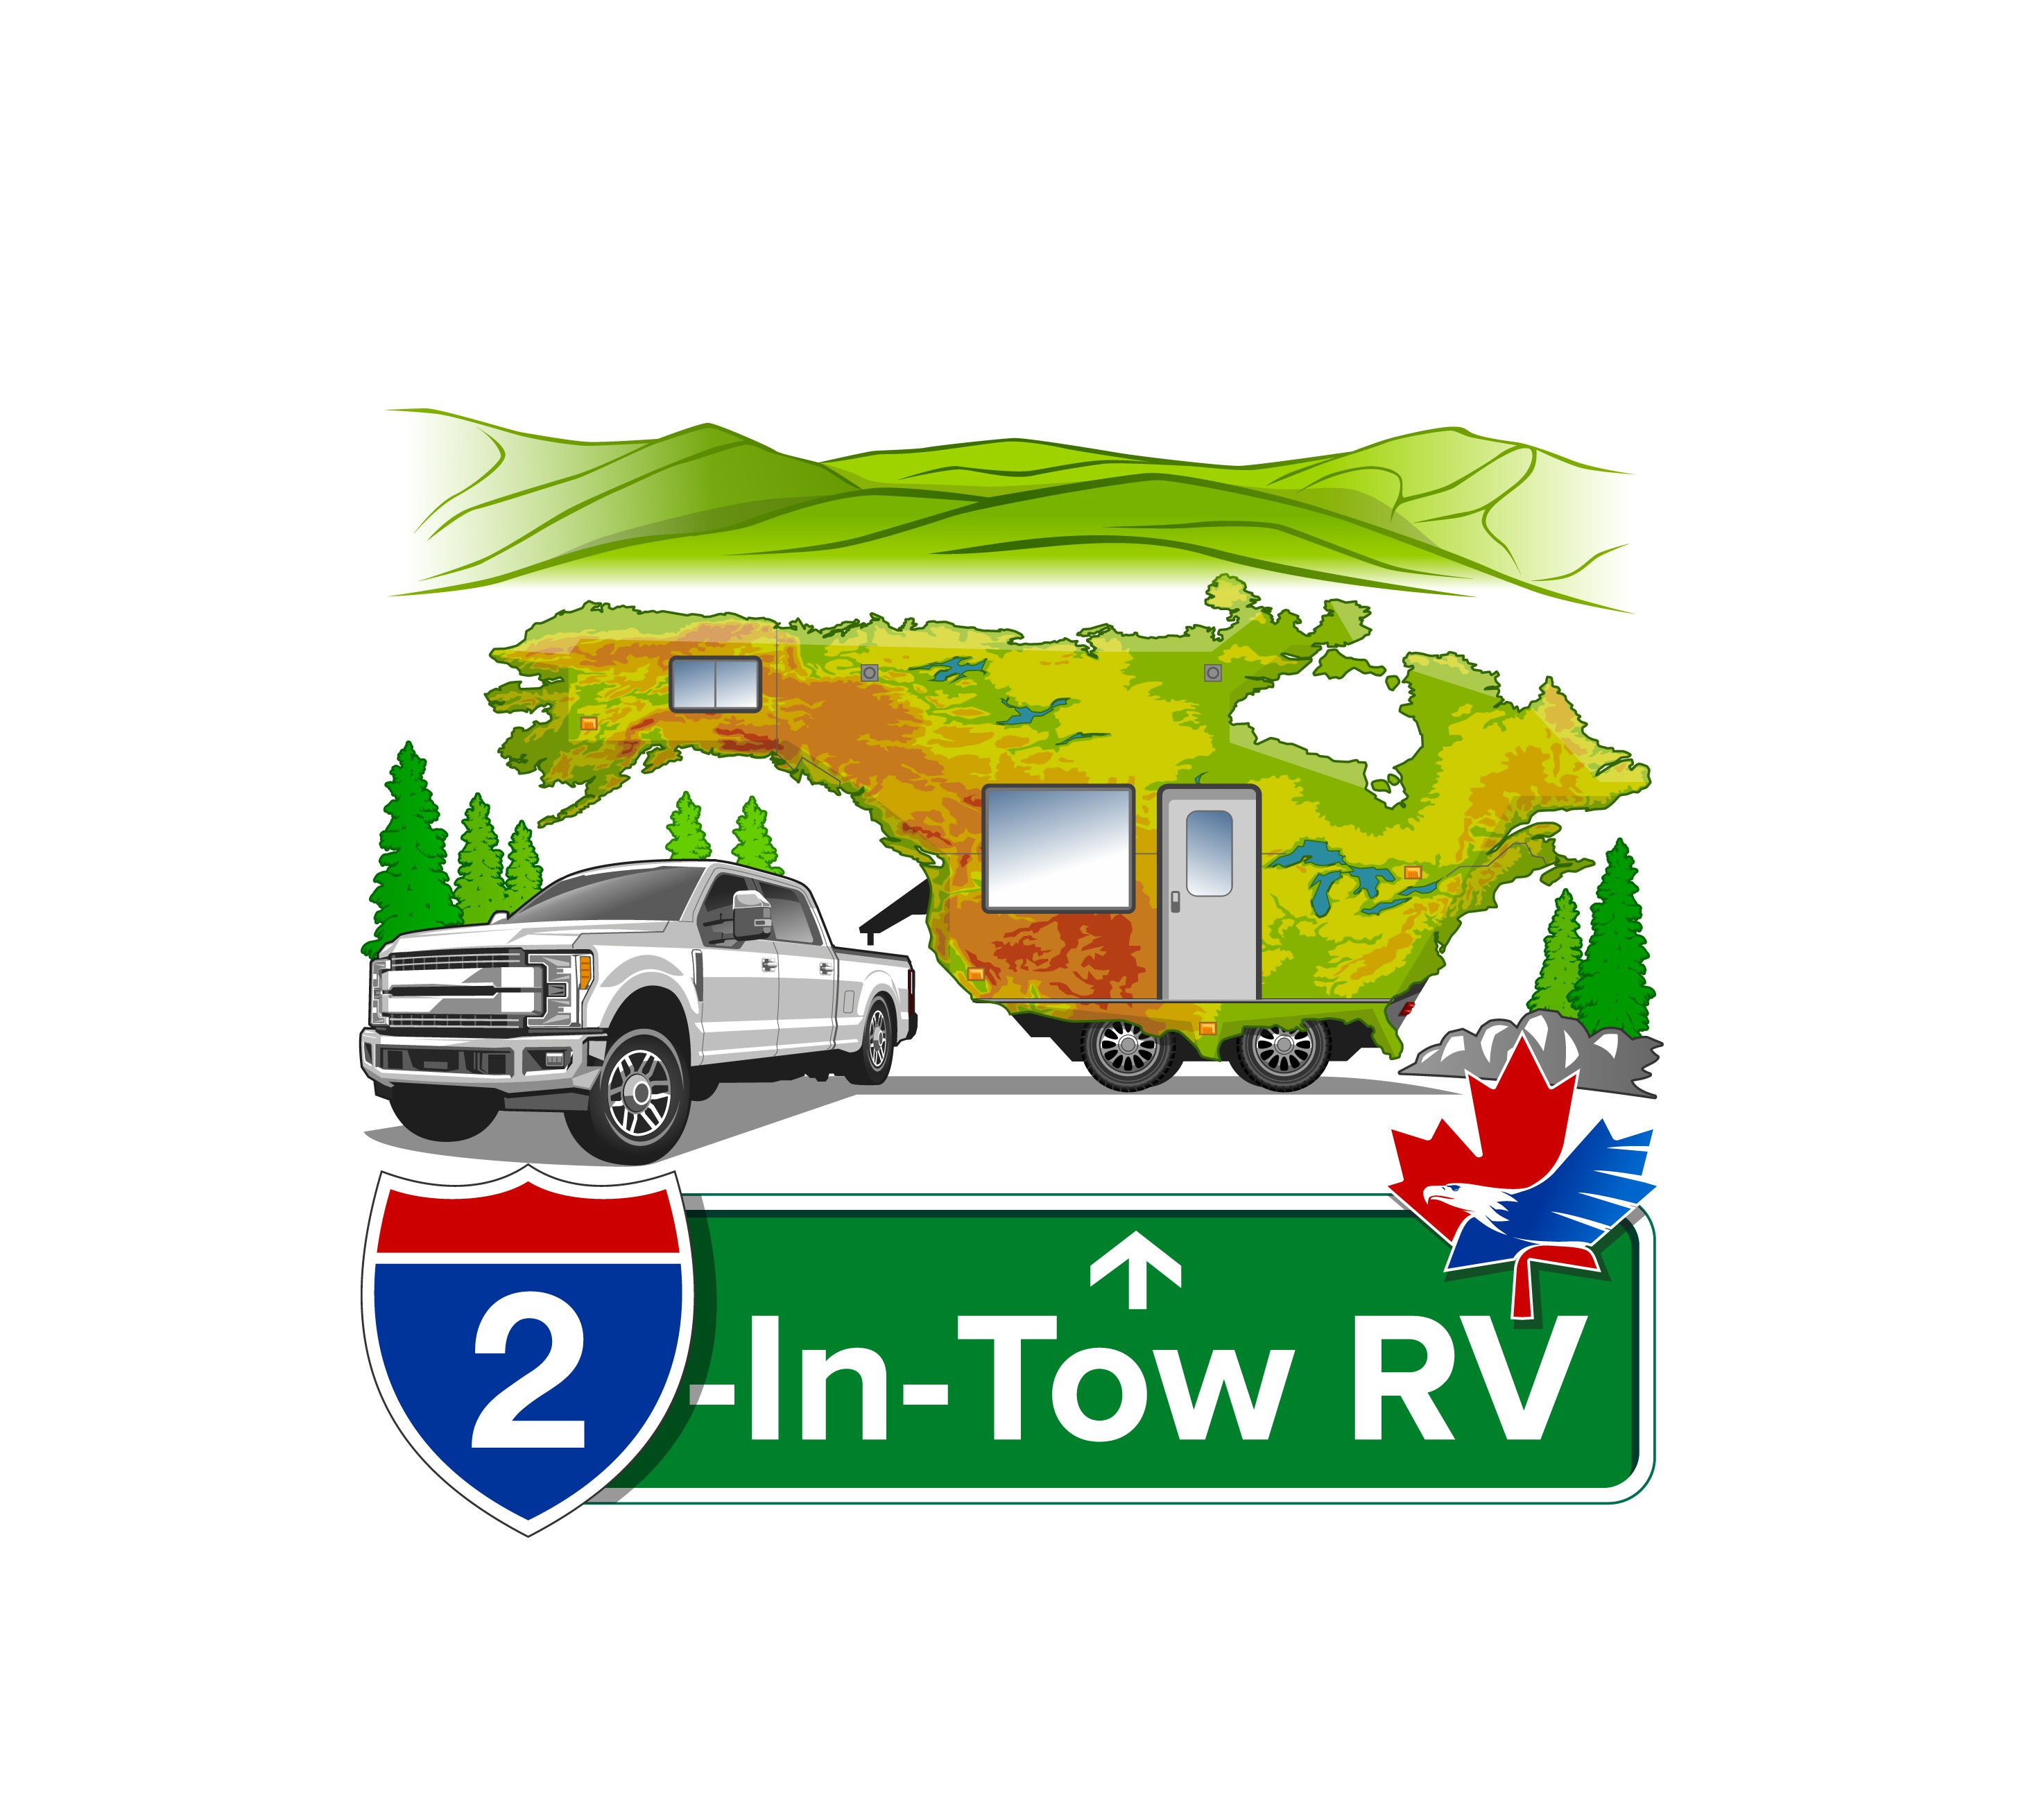 Illustrated, fun, modern, cartoon style logo for couple traveling in a fifth wheel with truck